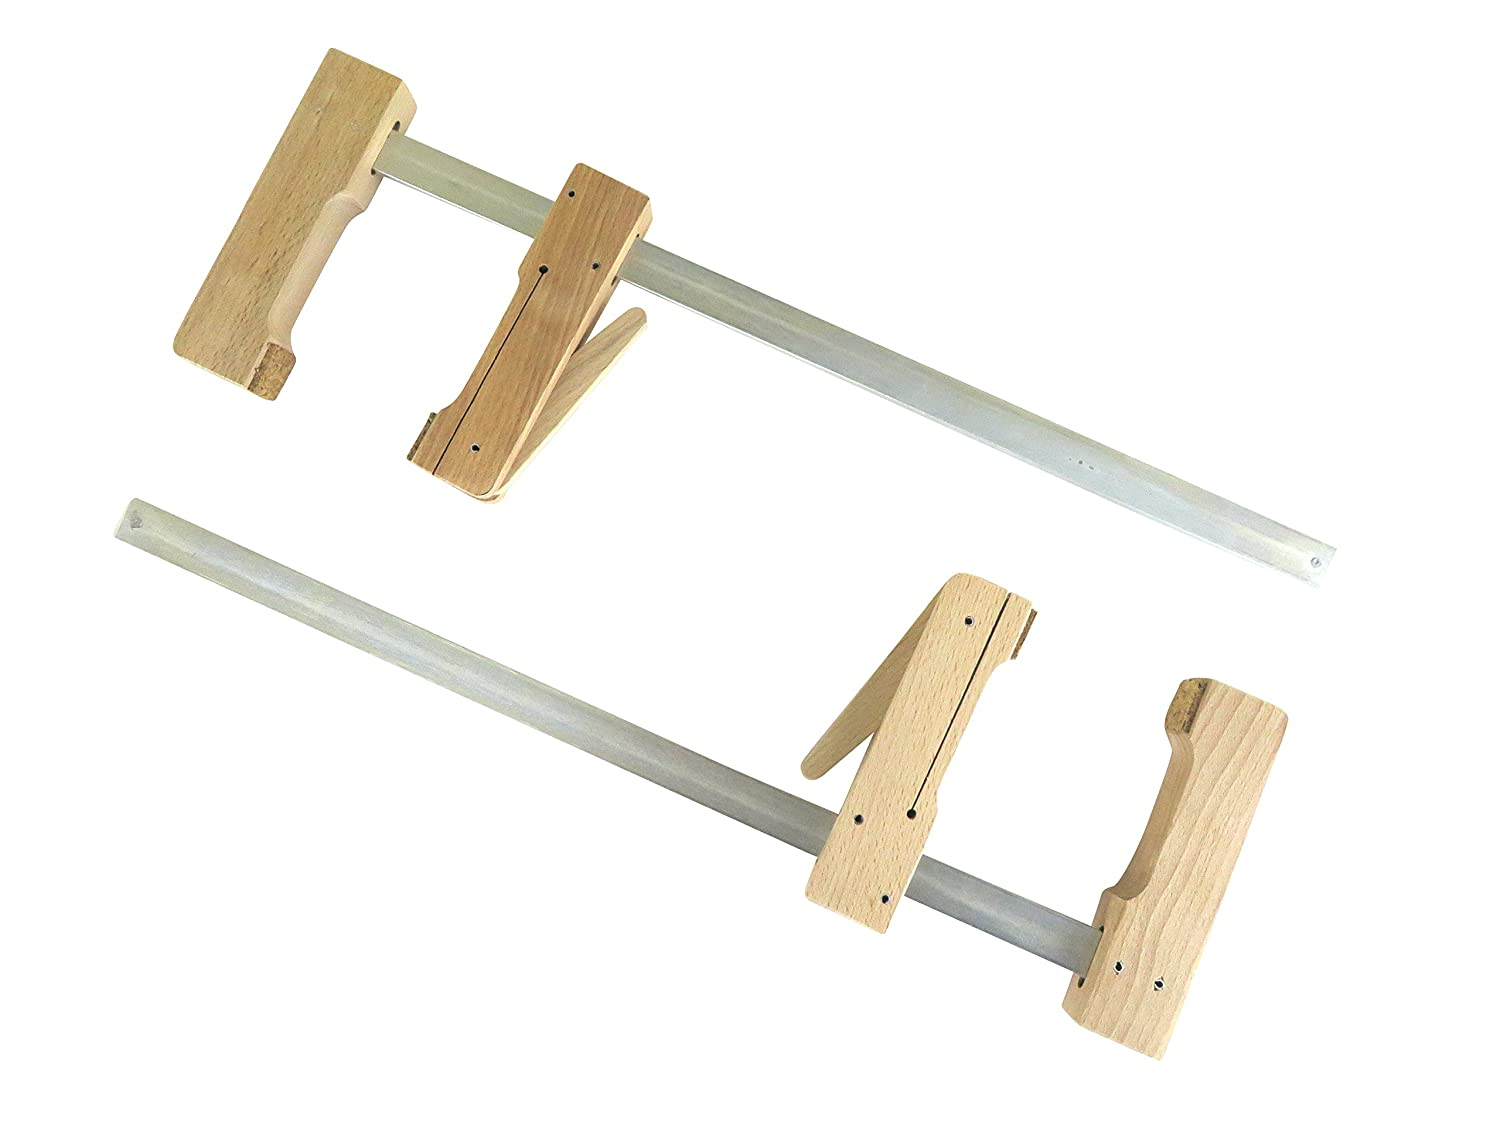 """2 each Pair Taytools 30-400 Wooden Wood Cam Action Clamps 15 1/2"""" Opening by 4-1/4"""" Depth European Beech"""